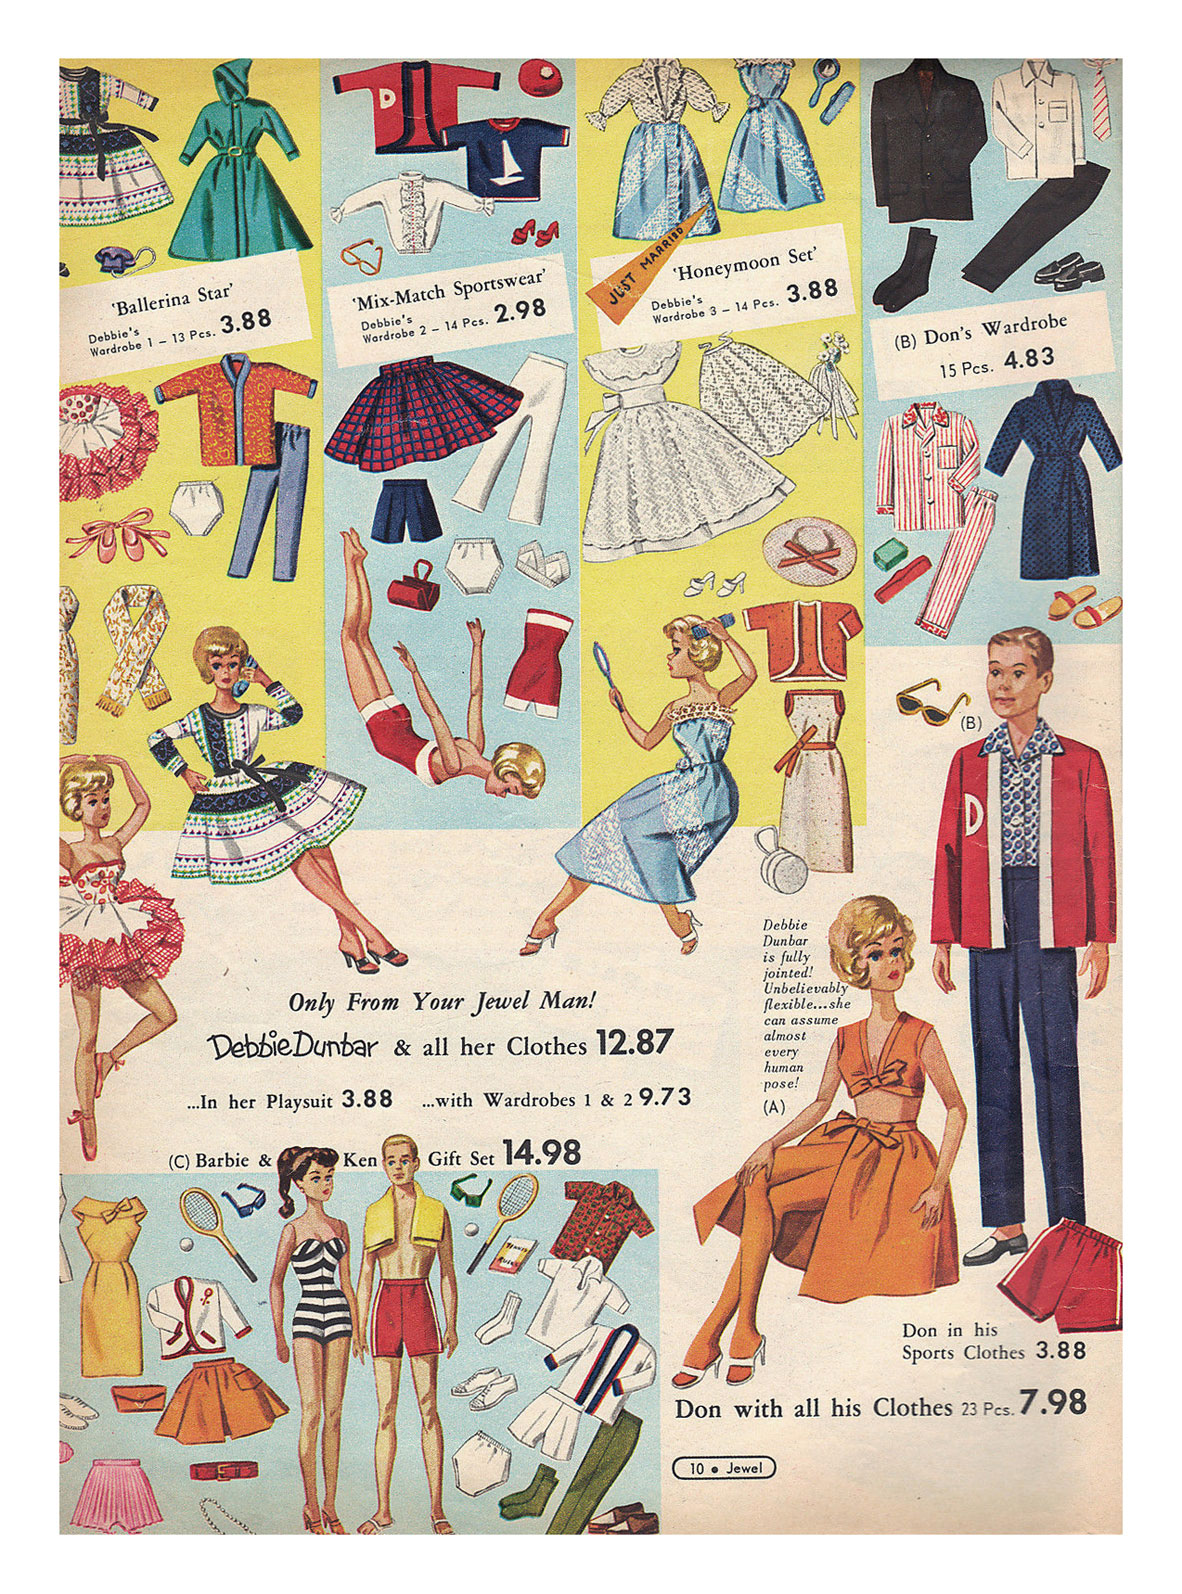 From 1962 Jewel Christmas catalogue